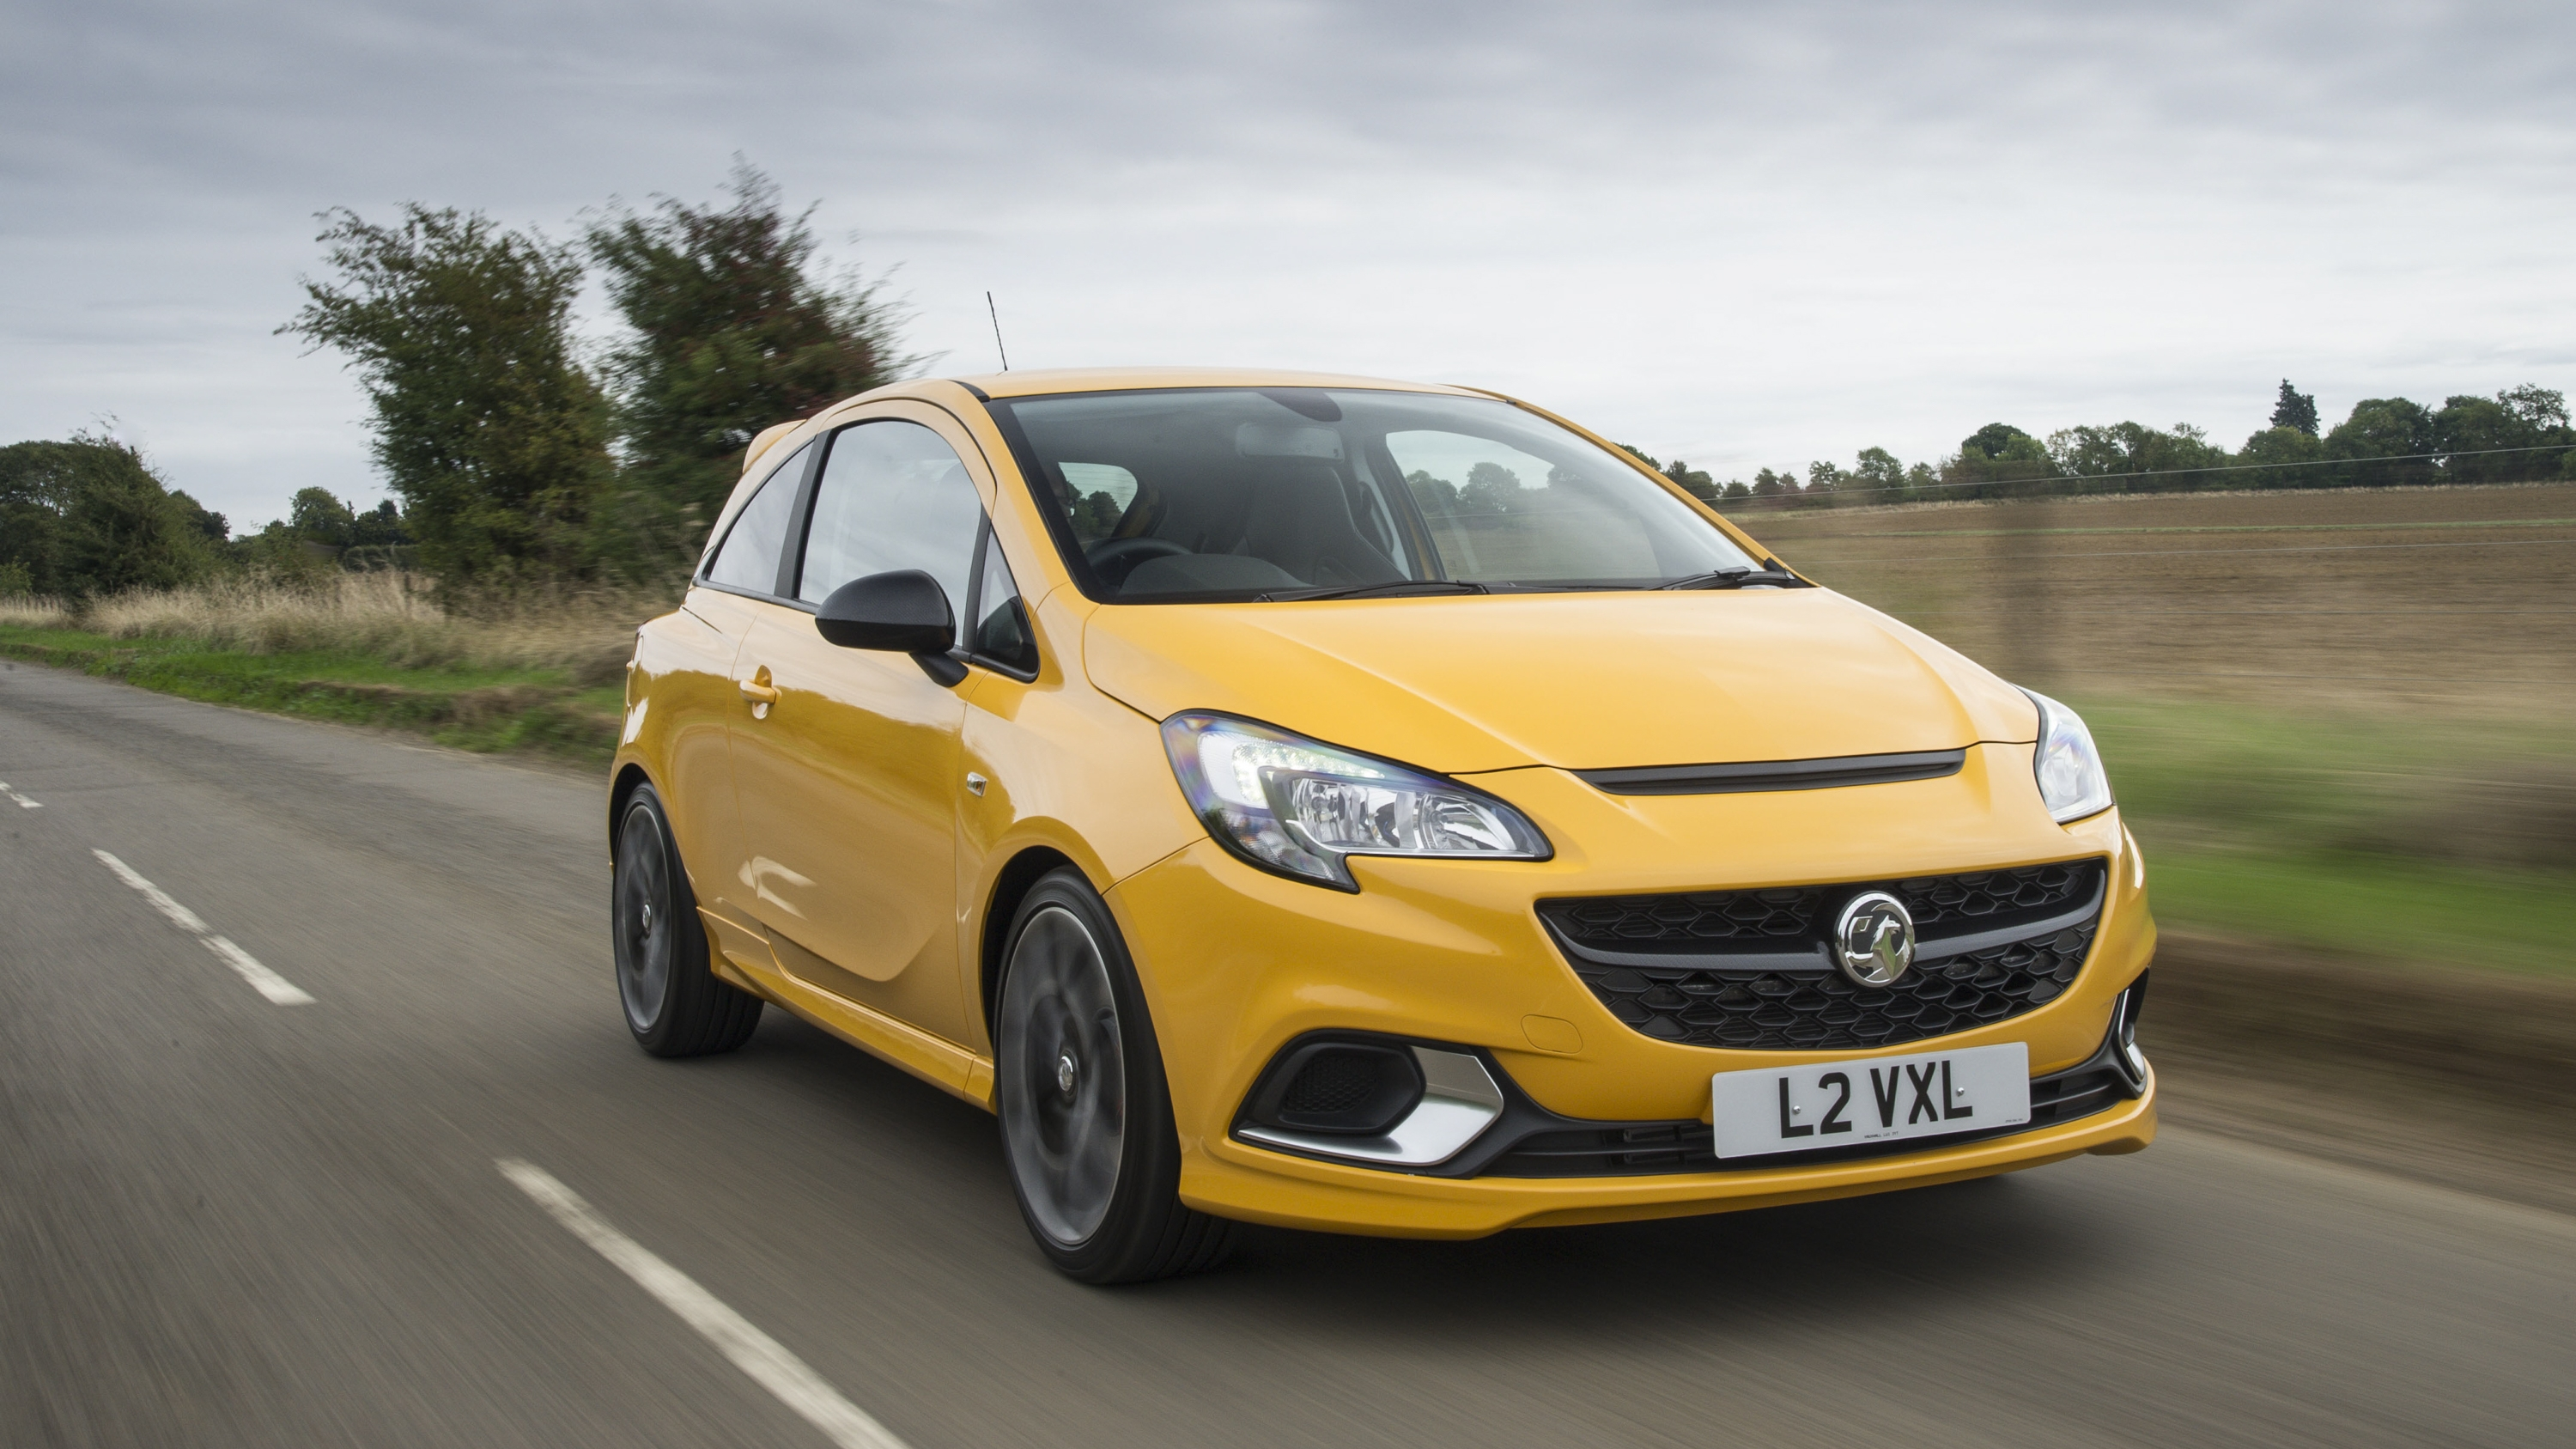 2019 vauxhall corsa gsi pictures photos wallpapers. Black Bedroom Furniture Sets. Home Design Ideas